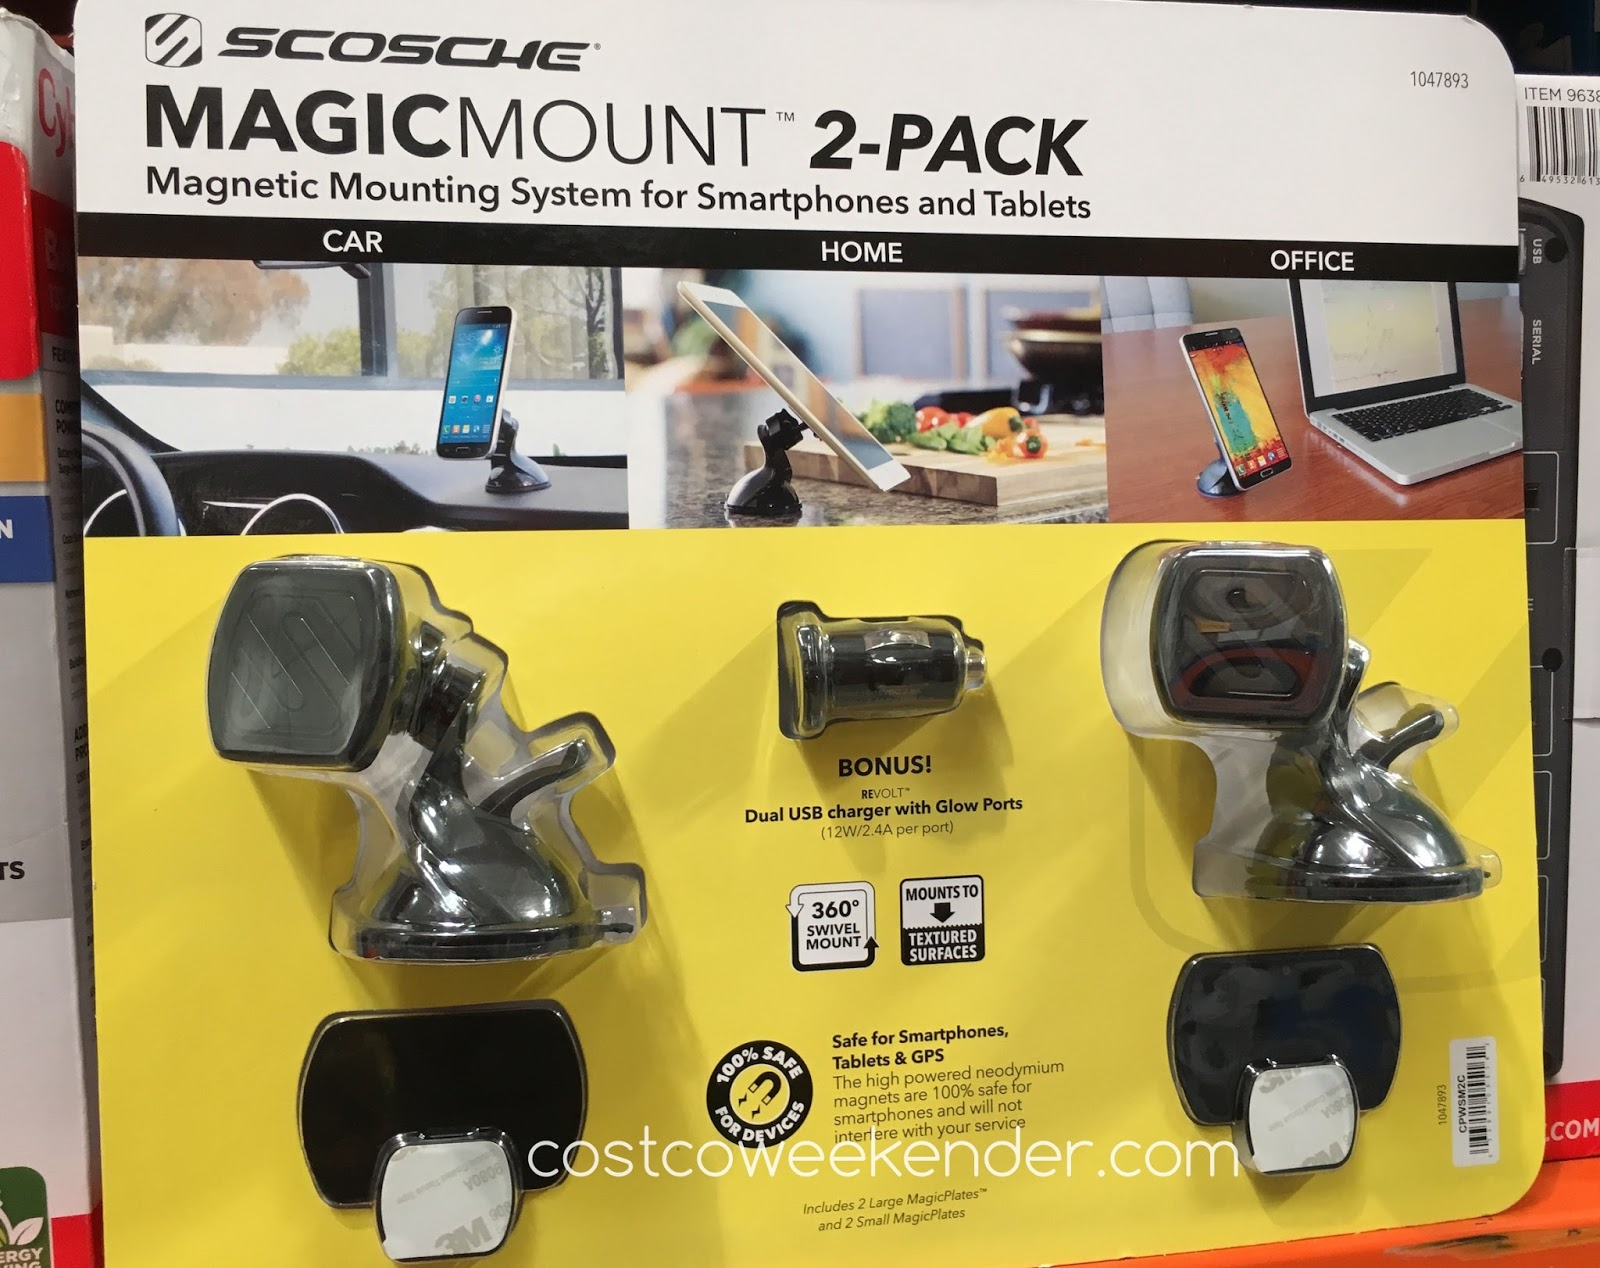 Easily view your smartphone with the Scosche MagicMount Magnetic Phone Mount